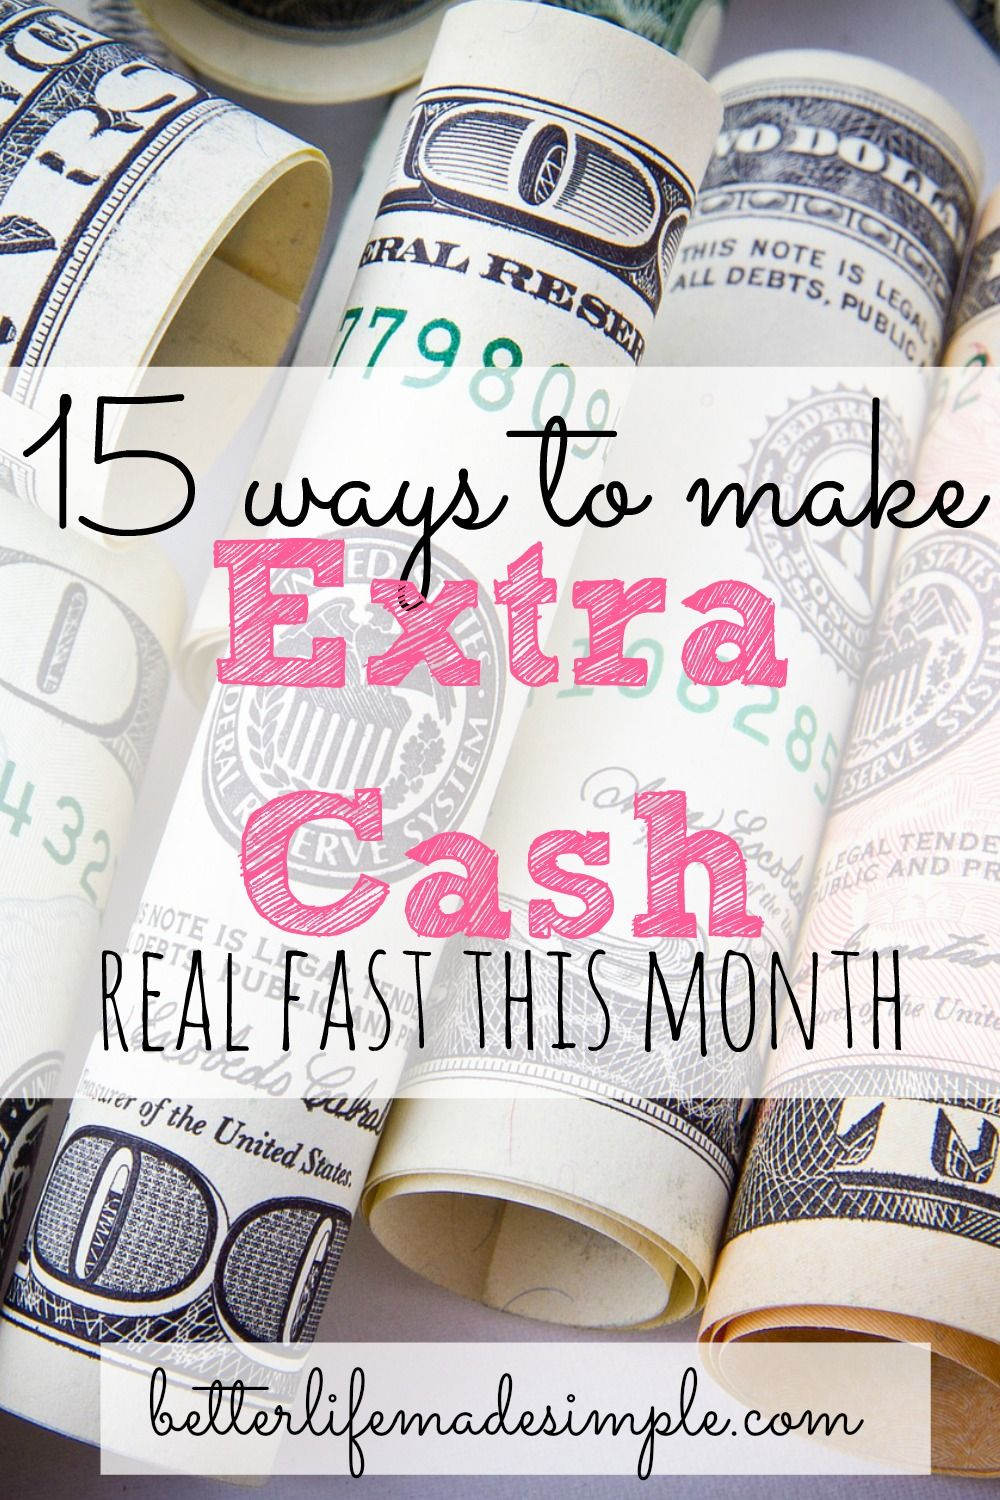 35 Ways To Make Extra Cash This Month | Extra money, Extra cash and ...